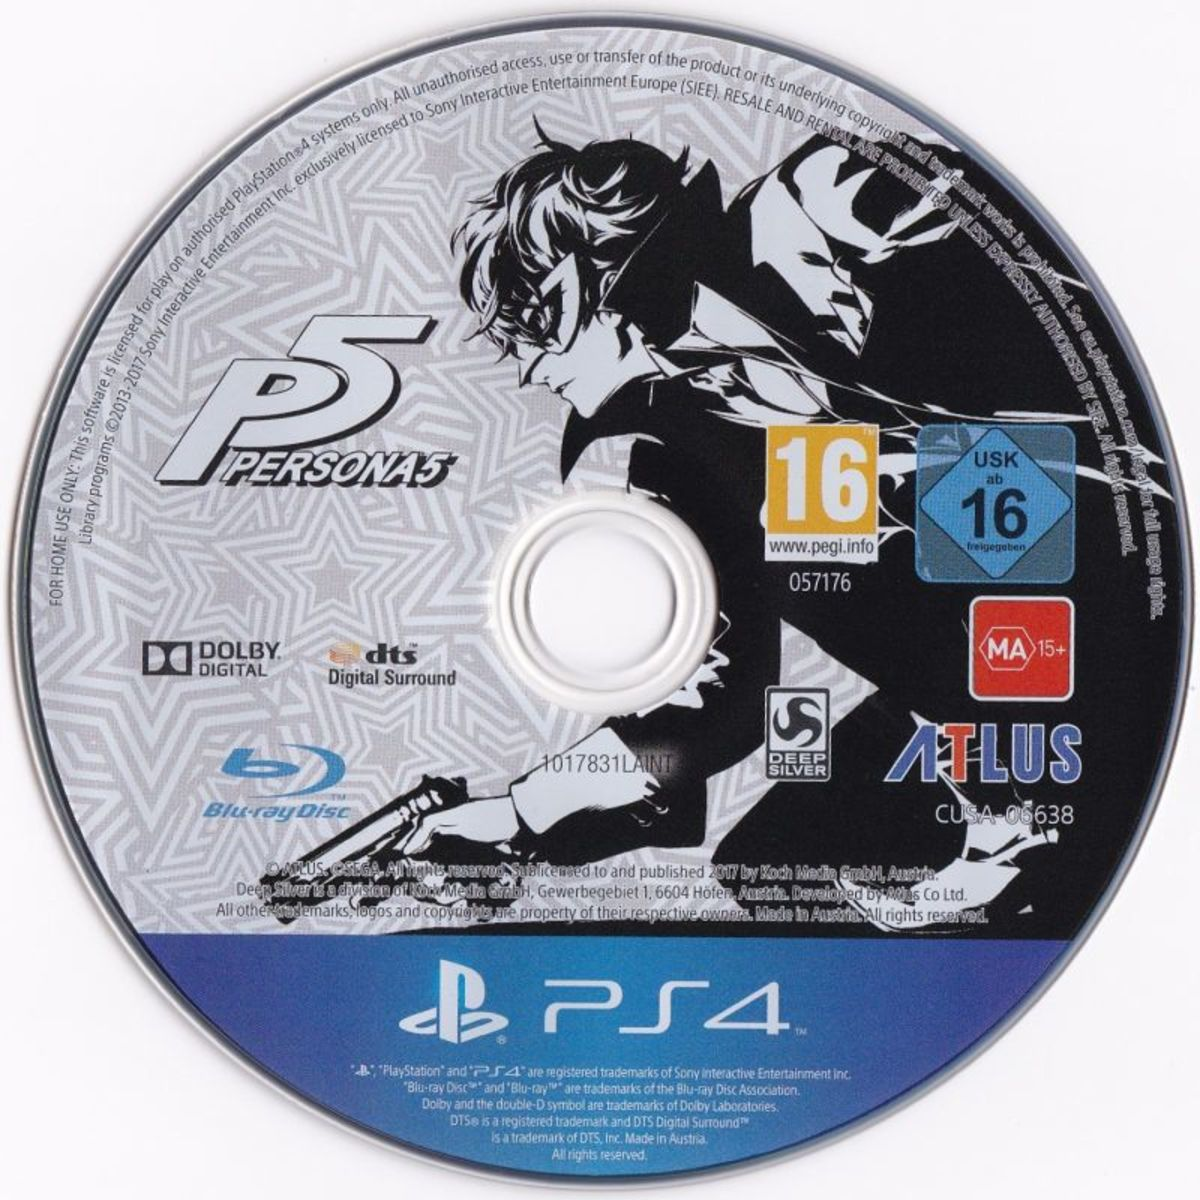 Persona 5 game disc